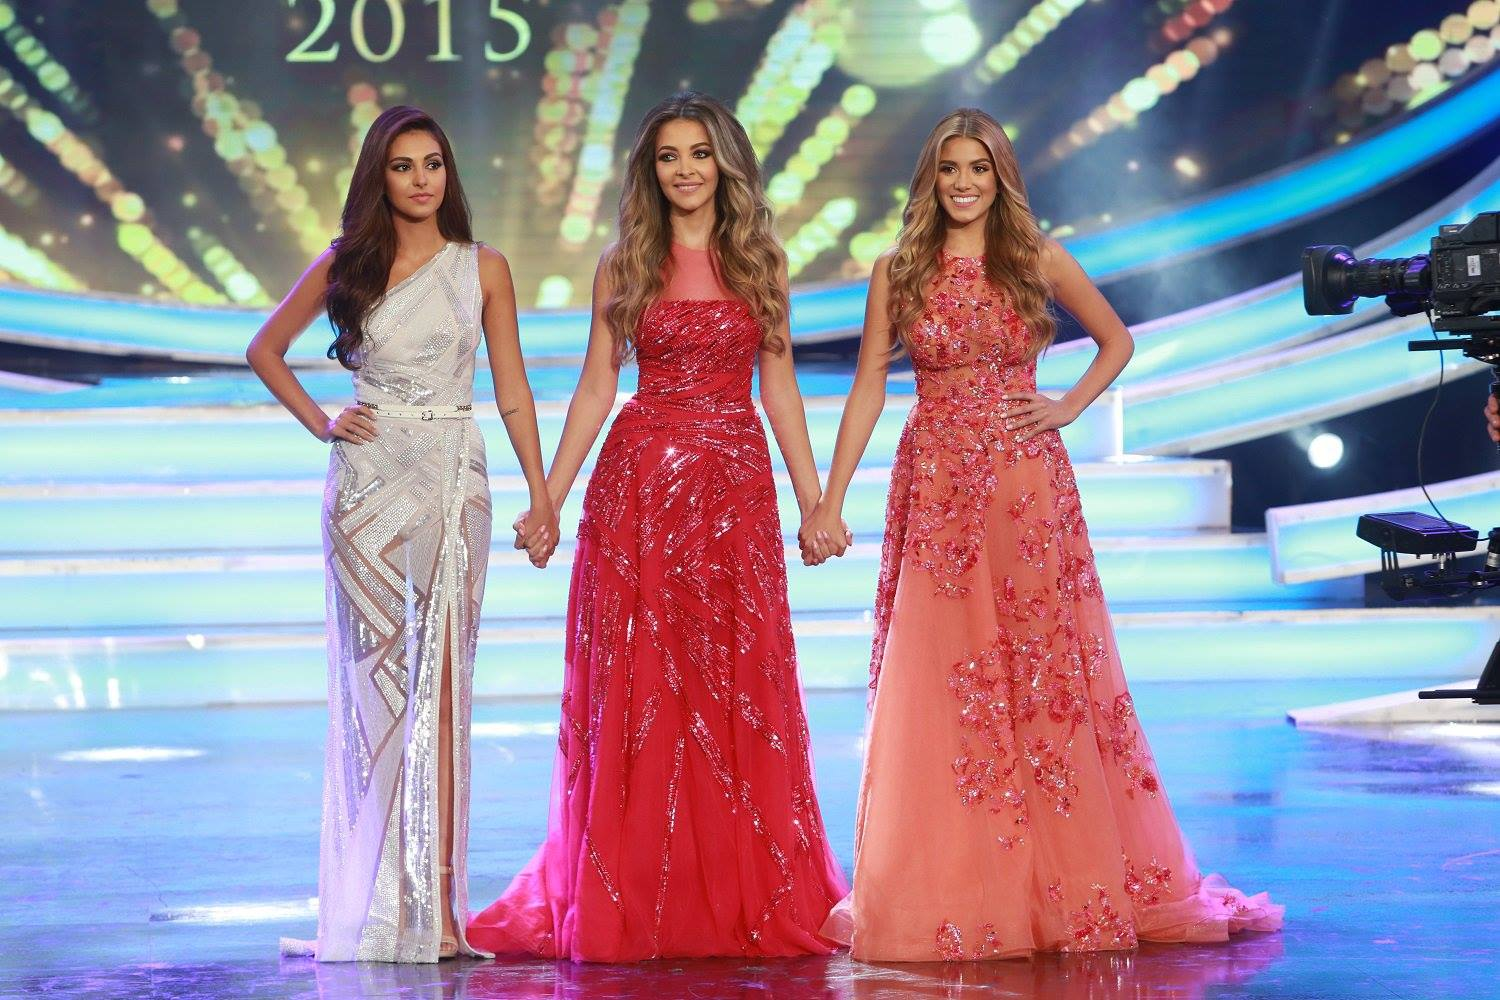 Abou Chacra earned a majority of points from the judges. Josline Mosleh and Cynthia Samoeil were first runners-up, and Nour Nasrallah and Maria Tannous came in second and third place, respectively. (Photo via LBCI)